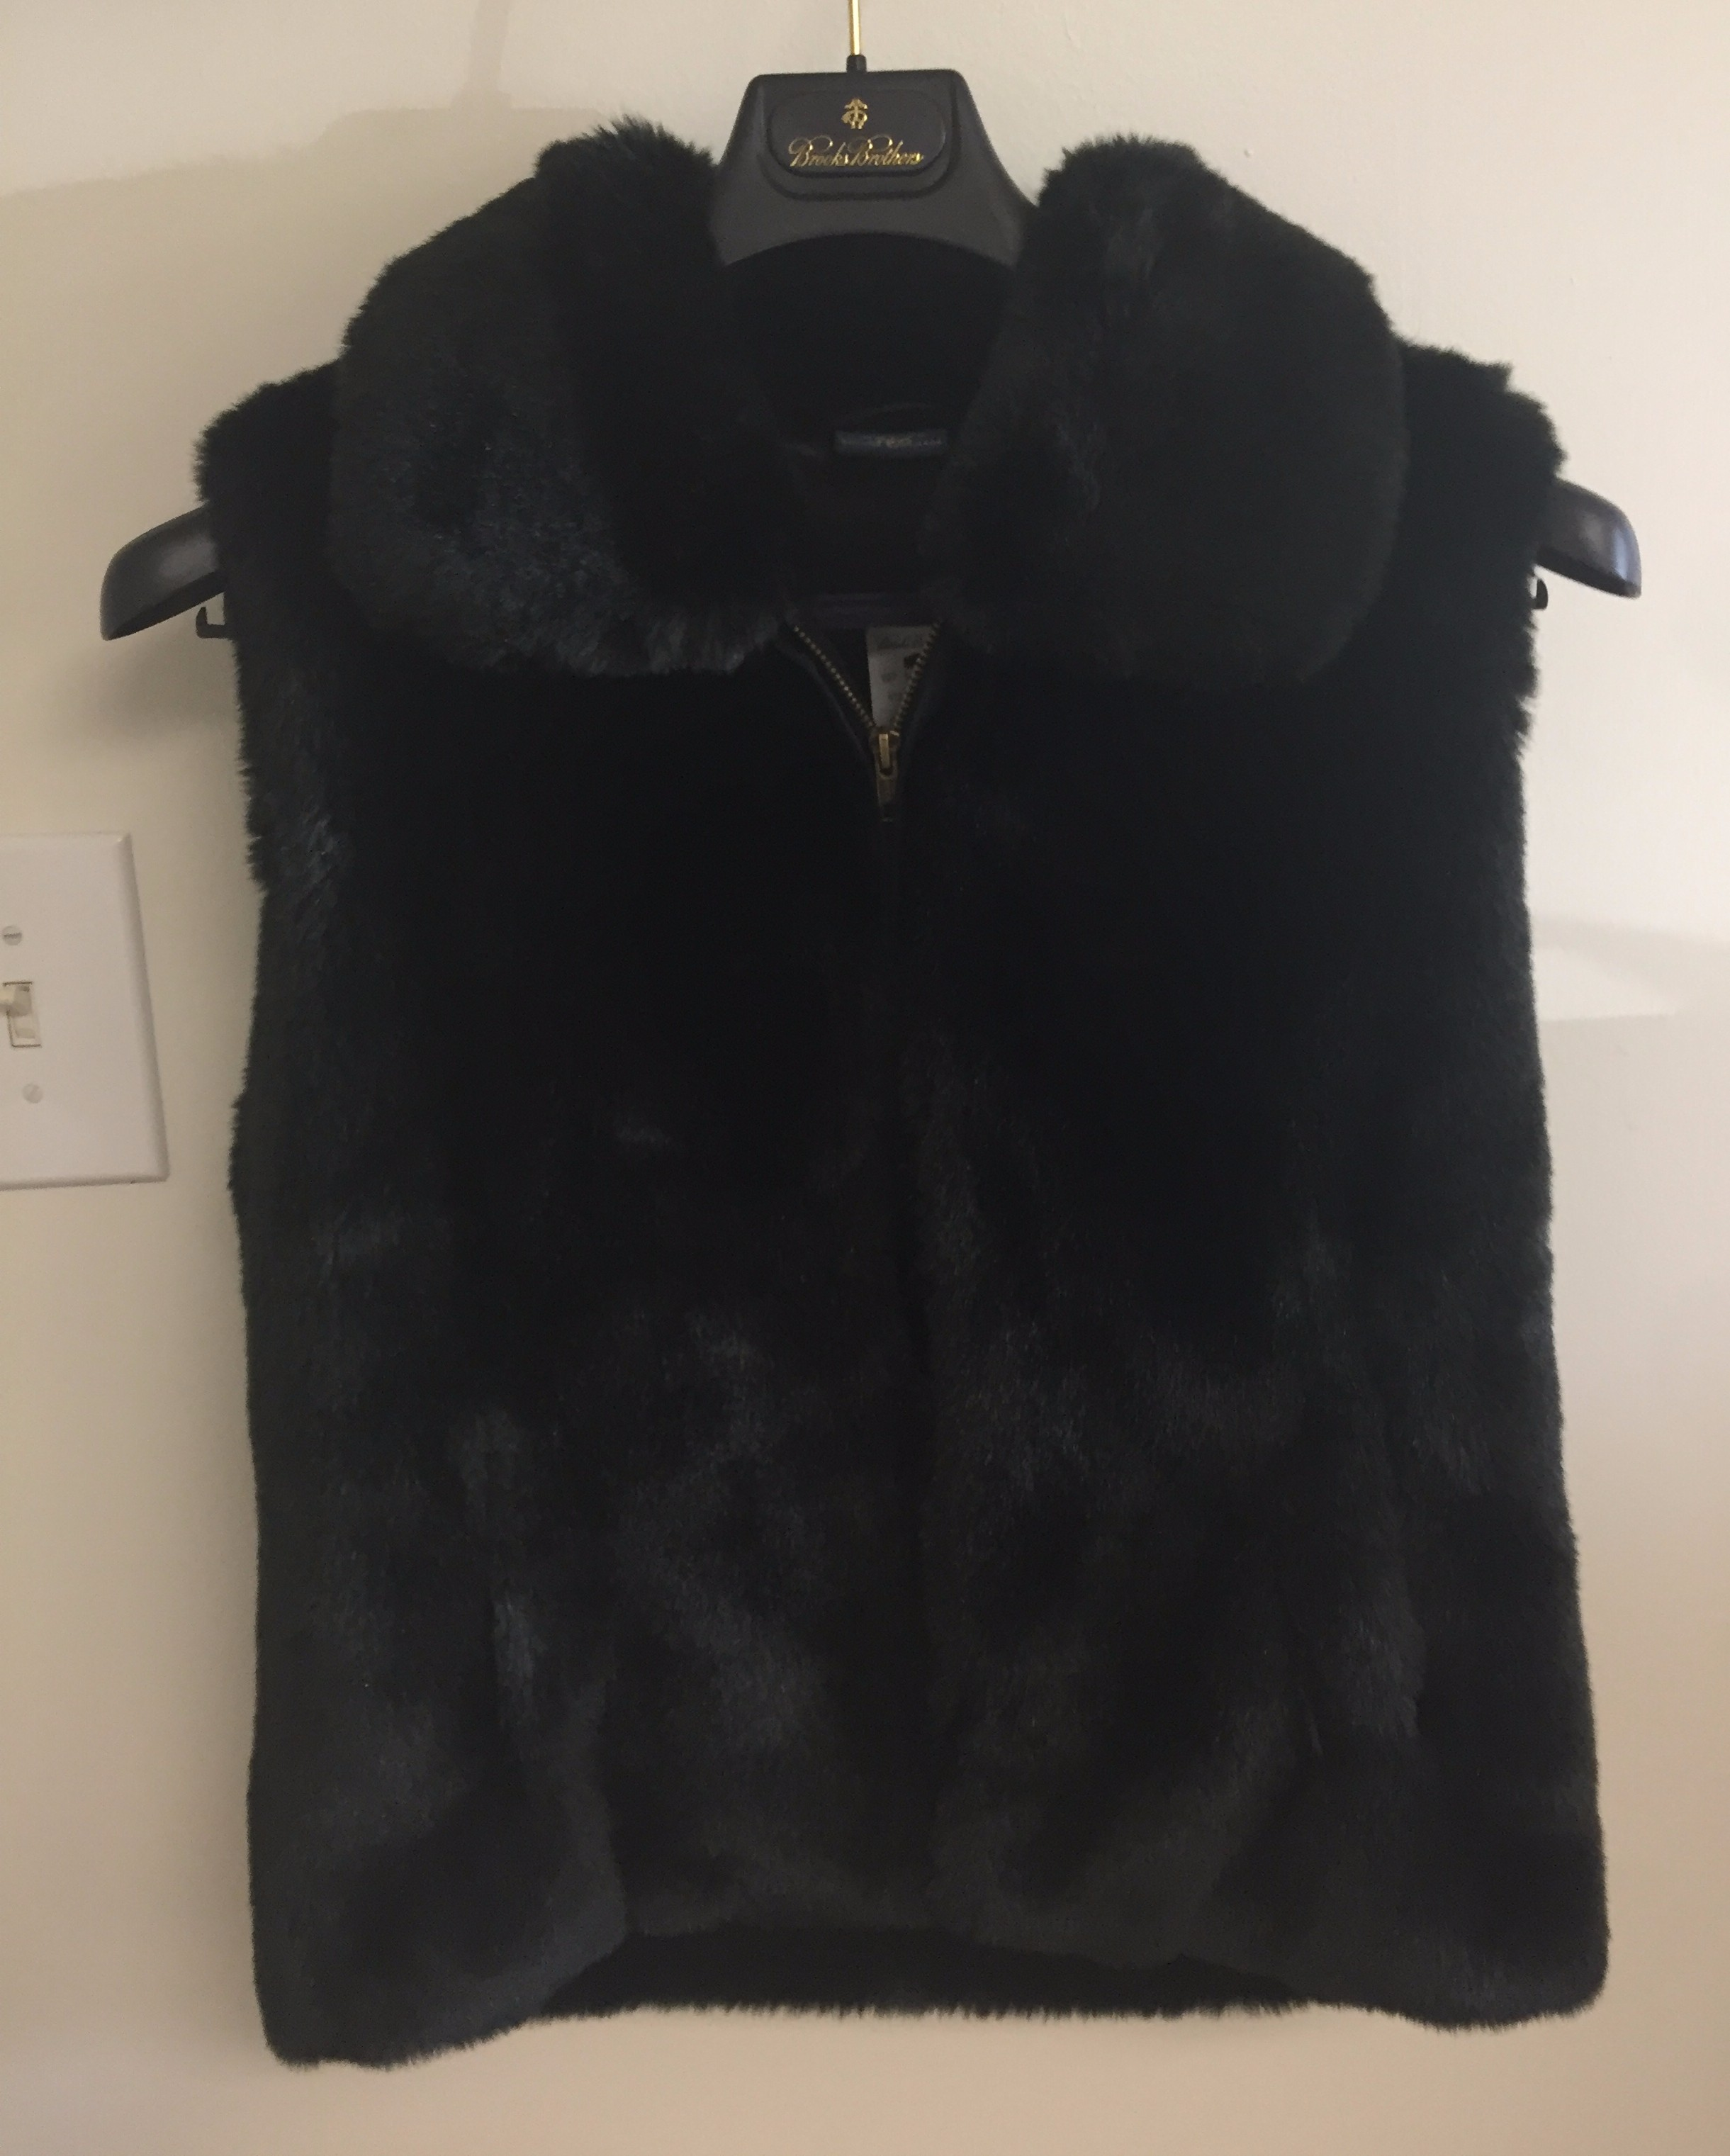 Brooks Brothers faux fur jacket donated by Debra Jay